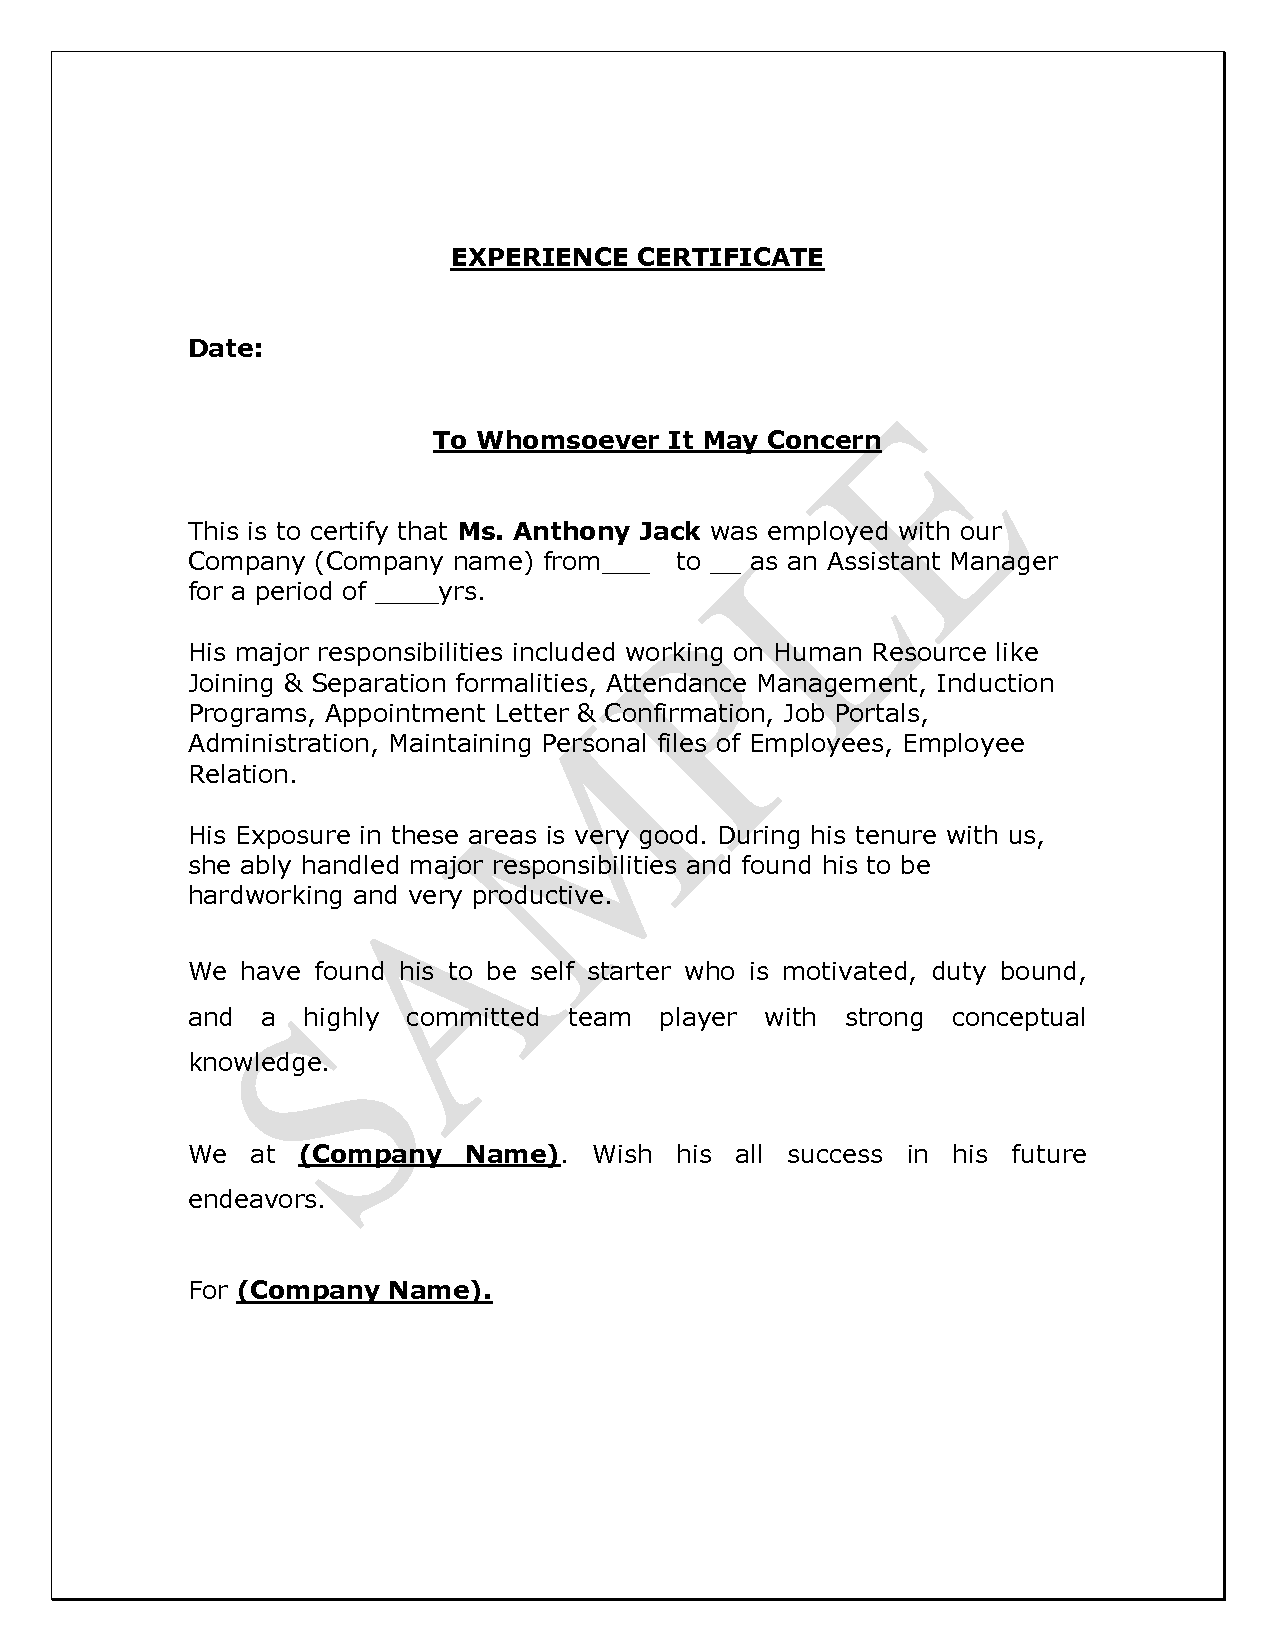 teaching experience certificate format doc lawteched